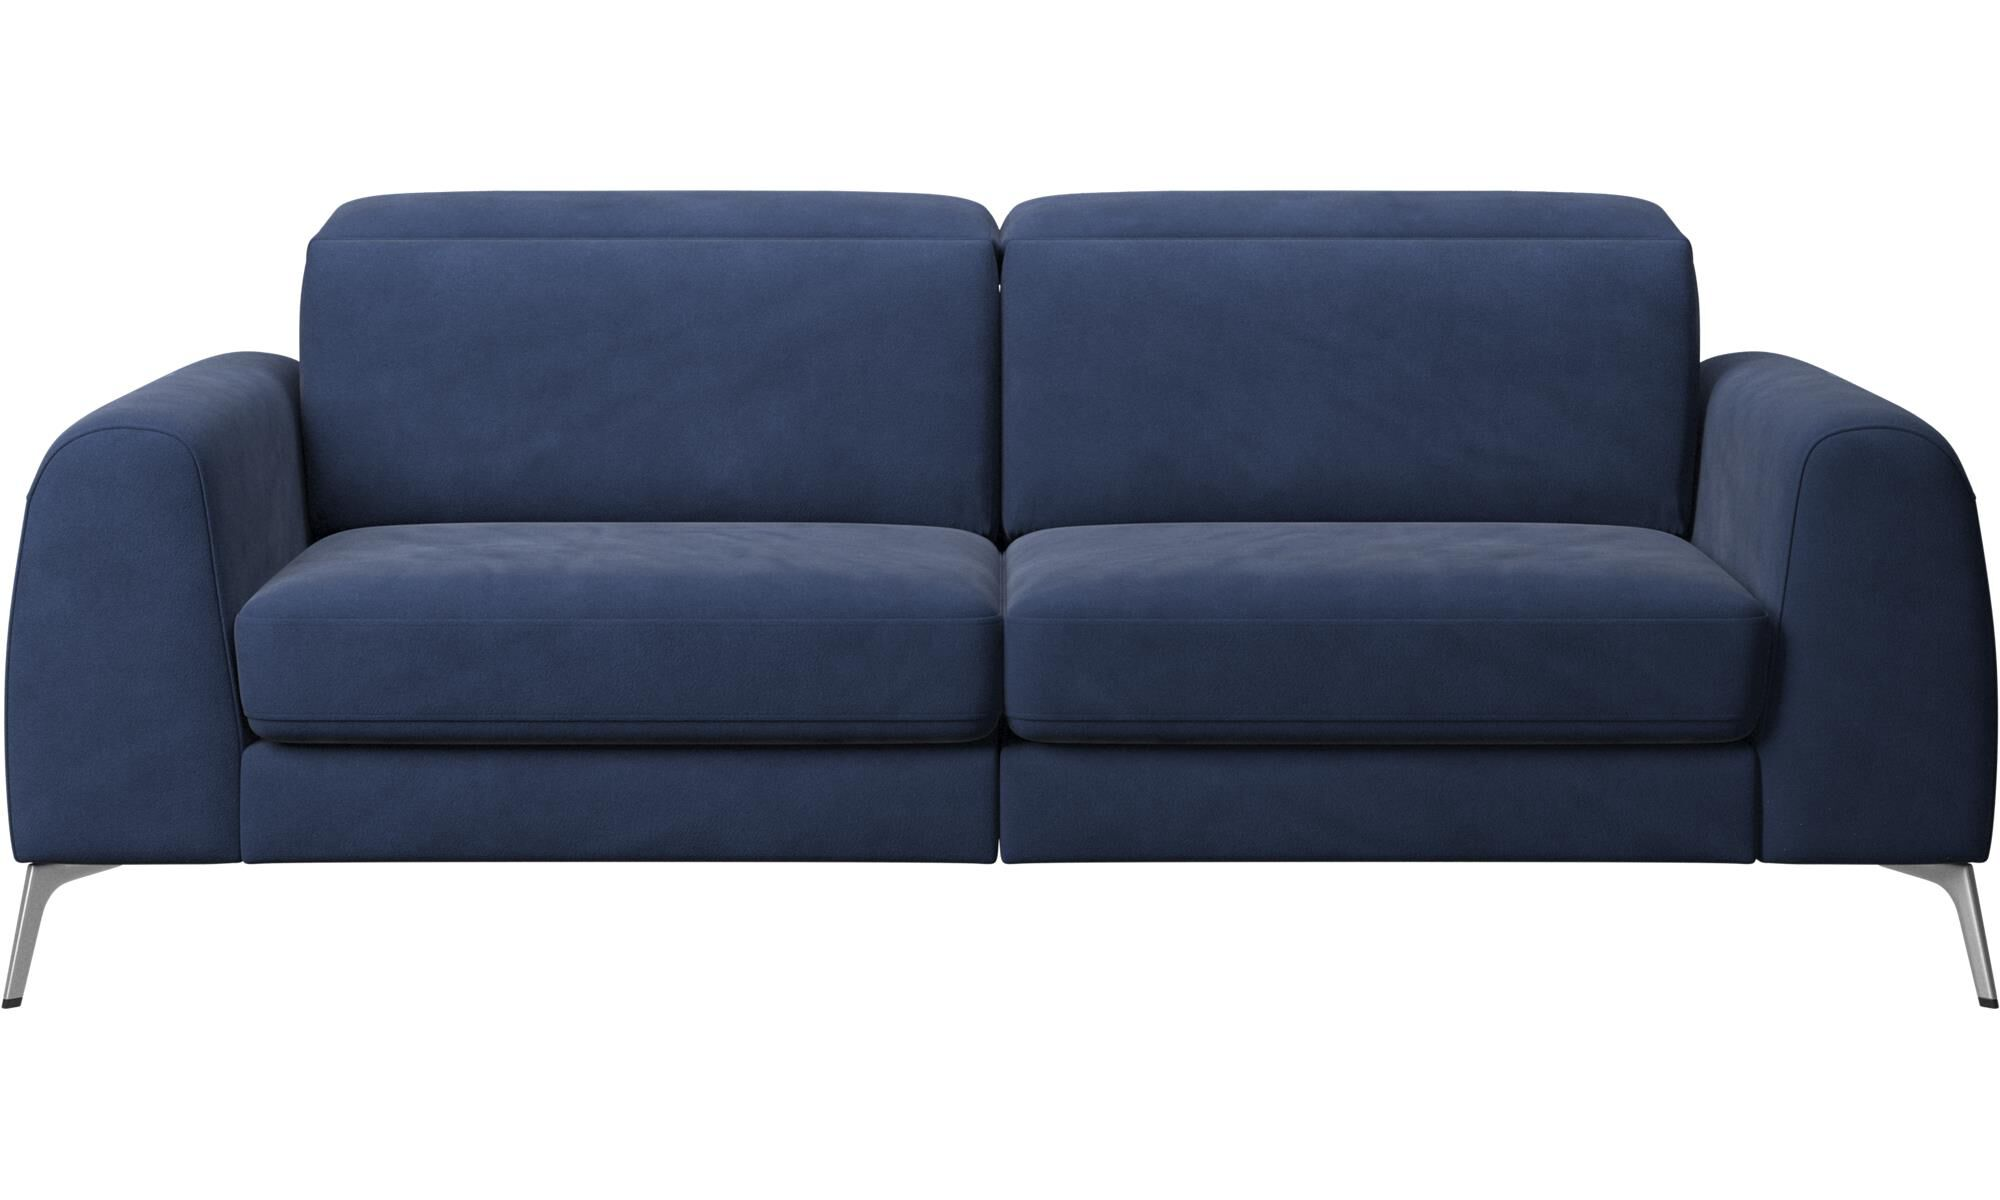 sofa beds madison sofa with sleeper function and manual headrest blue fabric